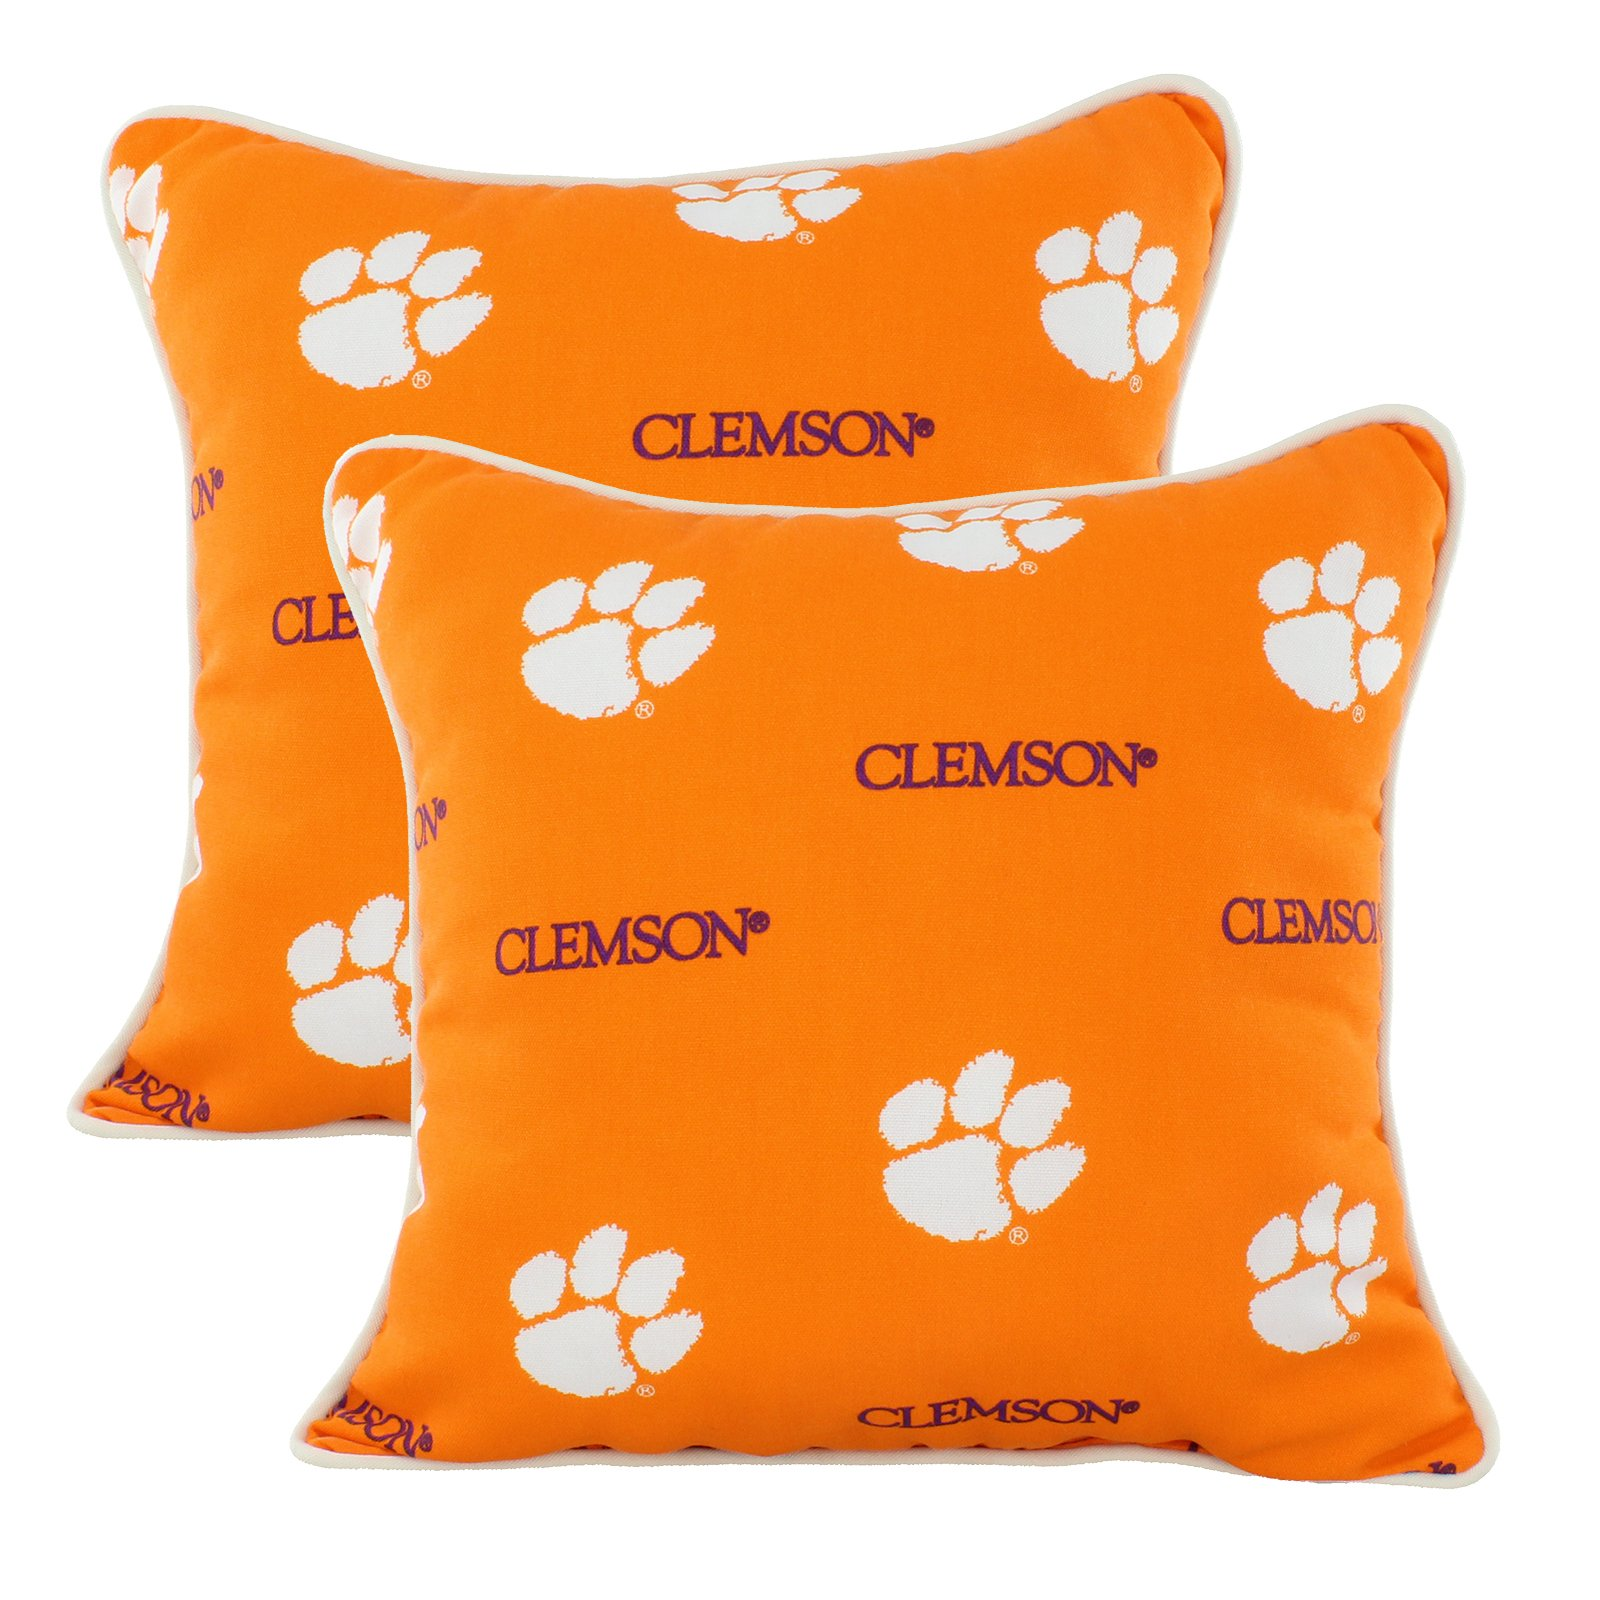 College Covers CLEODPPR Clemson Tigers Outdoor Decorative Pillow Pair, 16'' x 16'', Orange